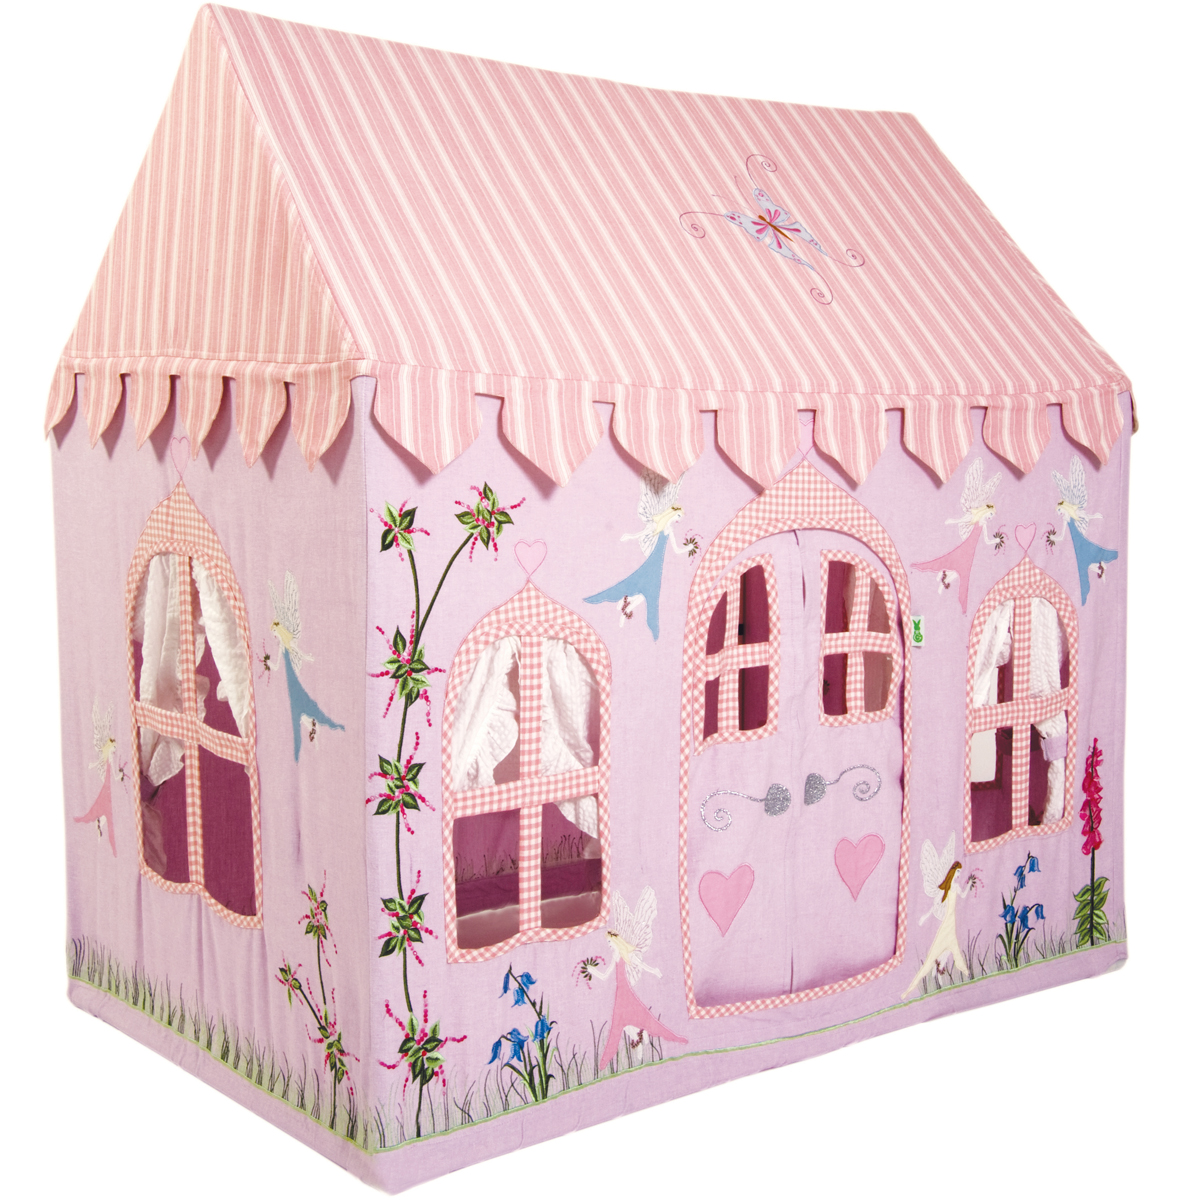 Fairyland Indoor Playhouse